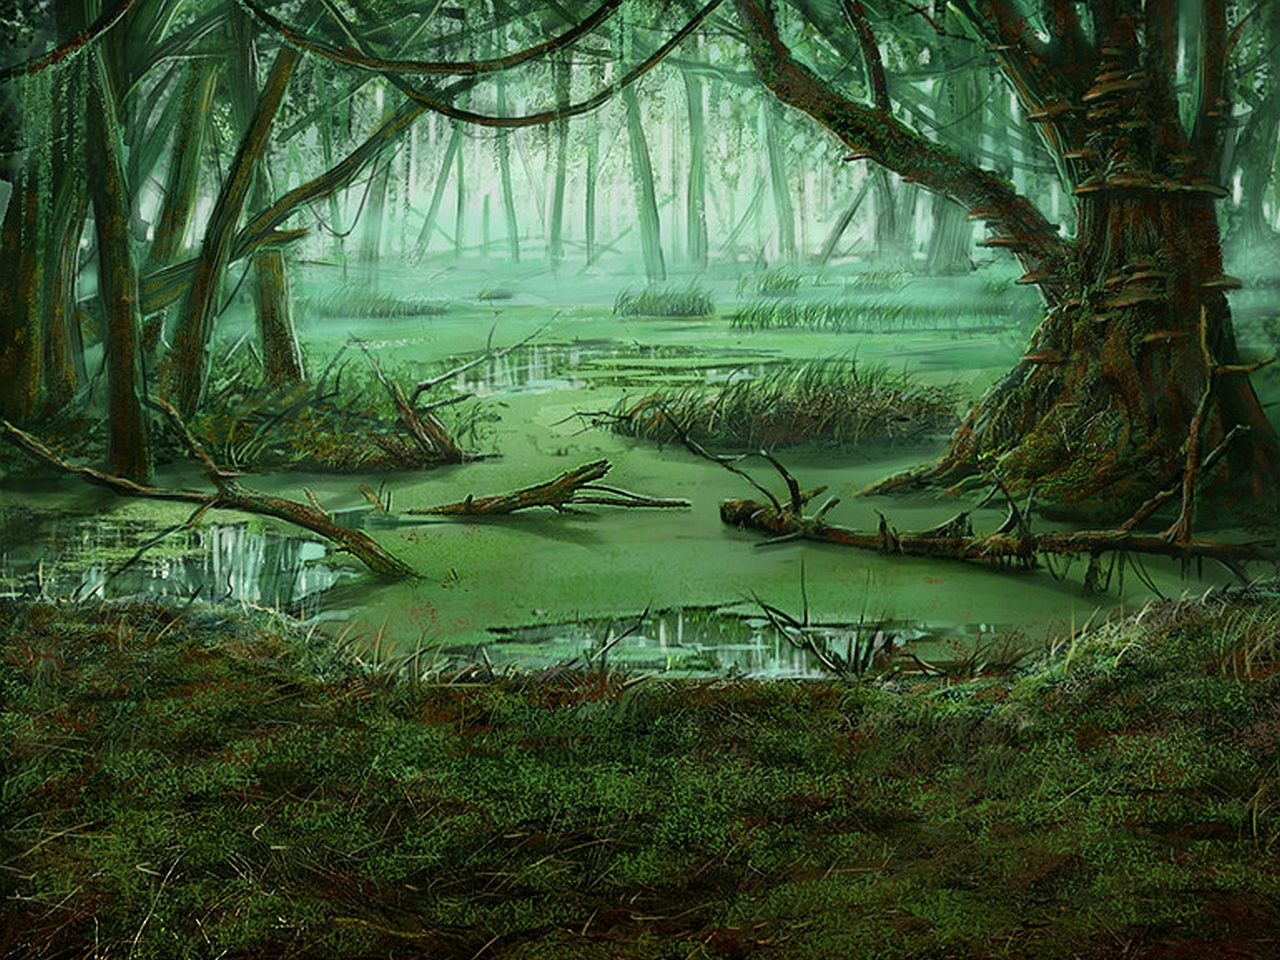 Swamp Computer Wallpapers Desktop Backgrounds 1280x960 ID396788 1280x960